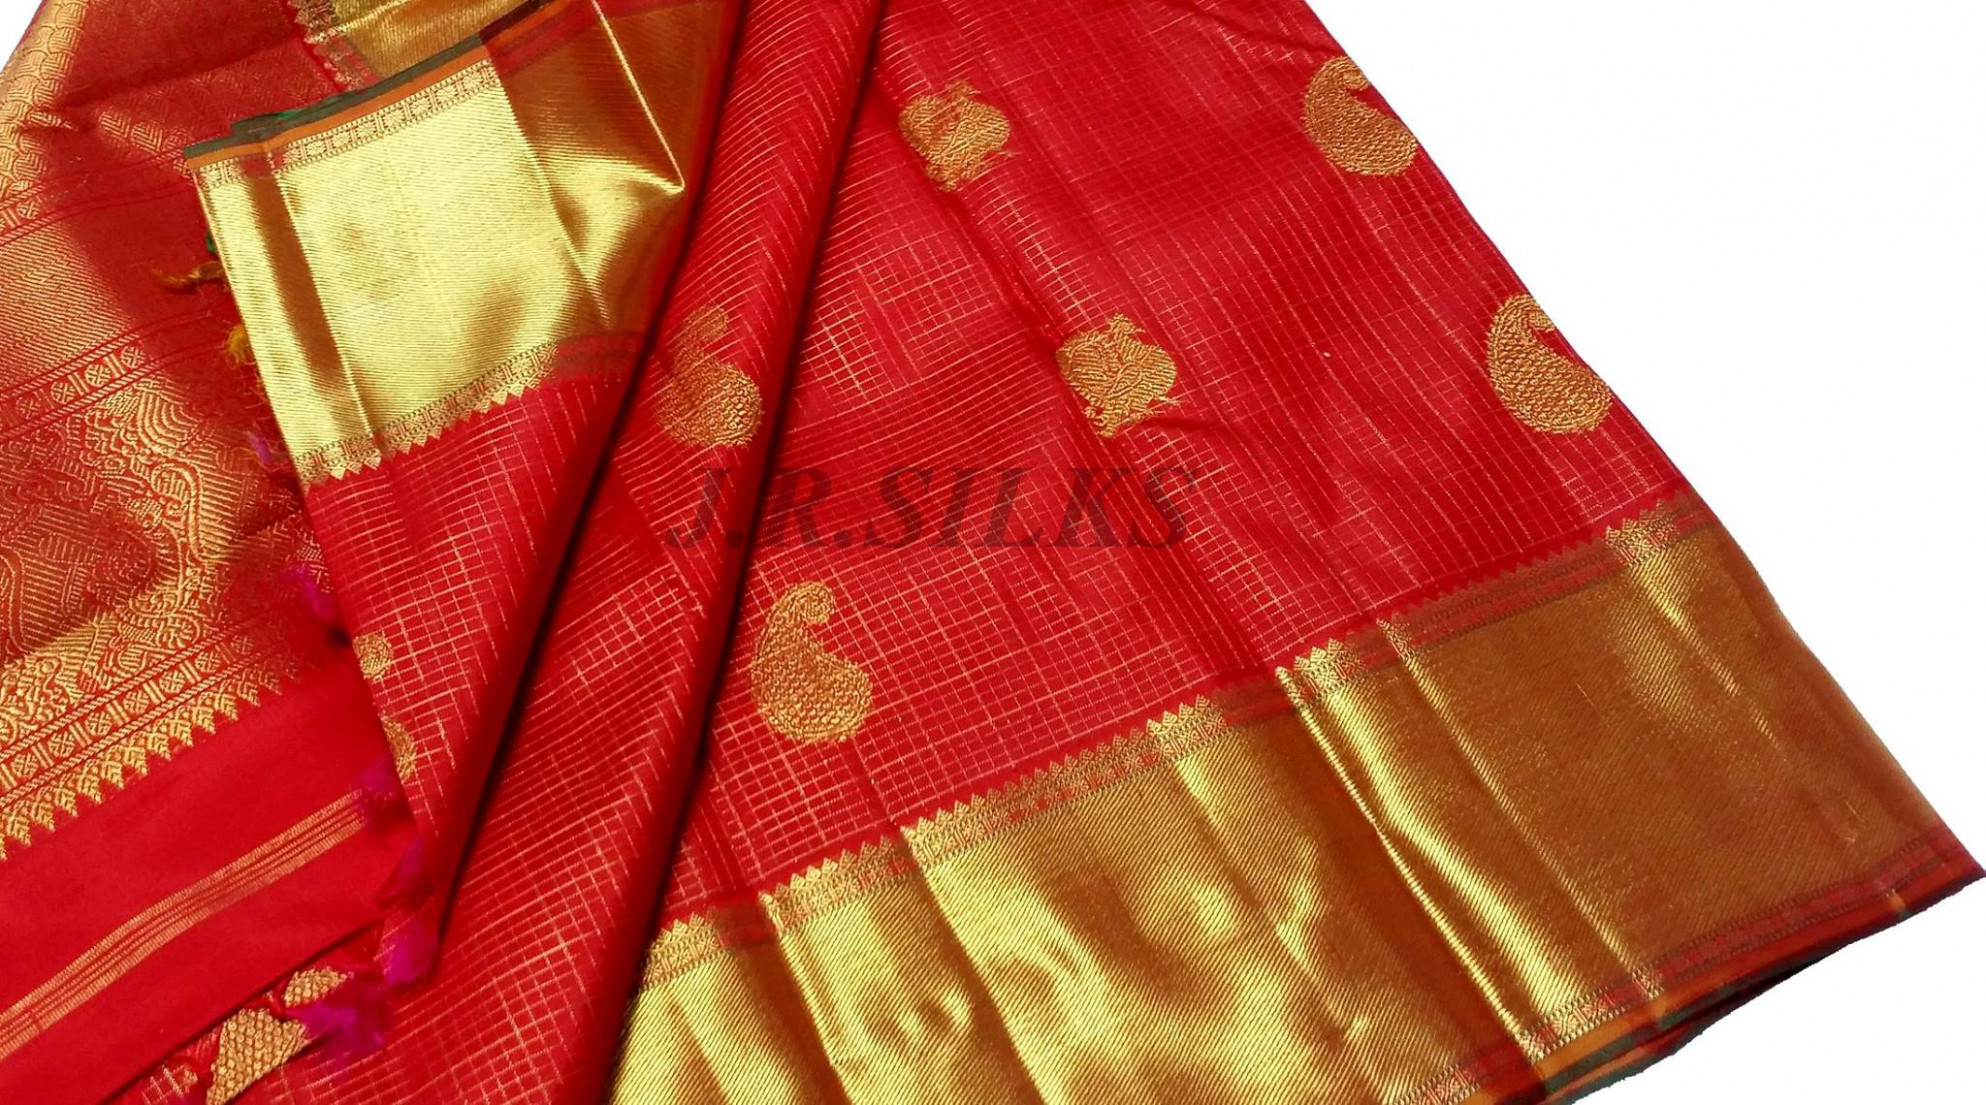 Kanjivaram Sarees Collection from Kanchipuram JR Silks - kanjivaram saree bollywood